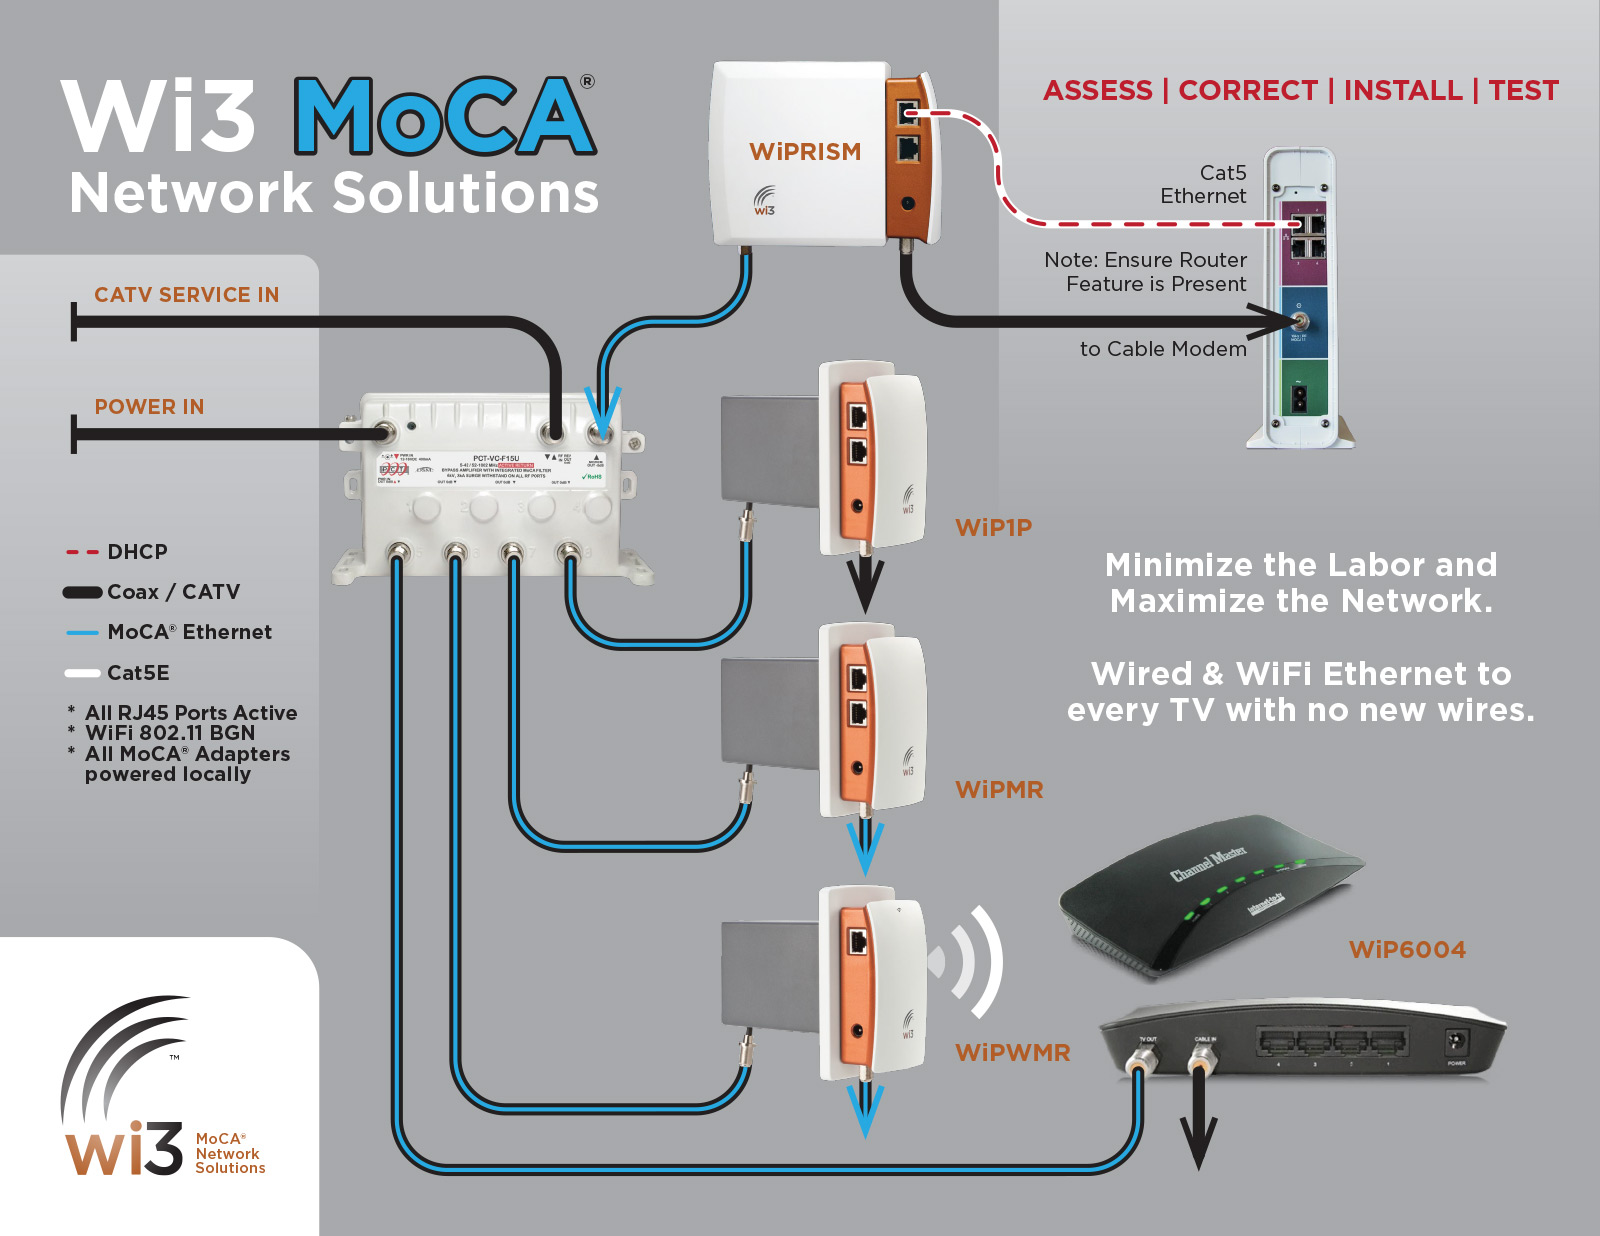 Wi3 Moca U00ae Network Solutions Joins Home Technology